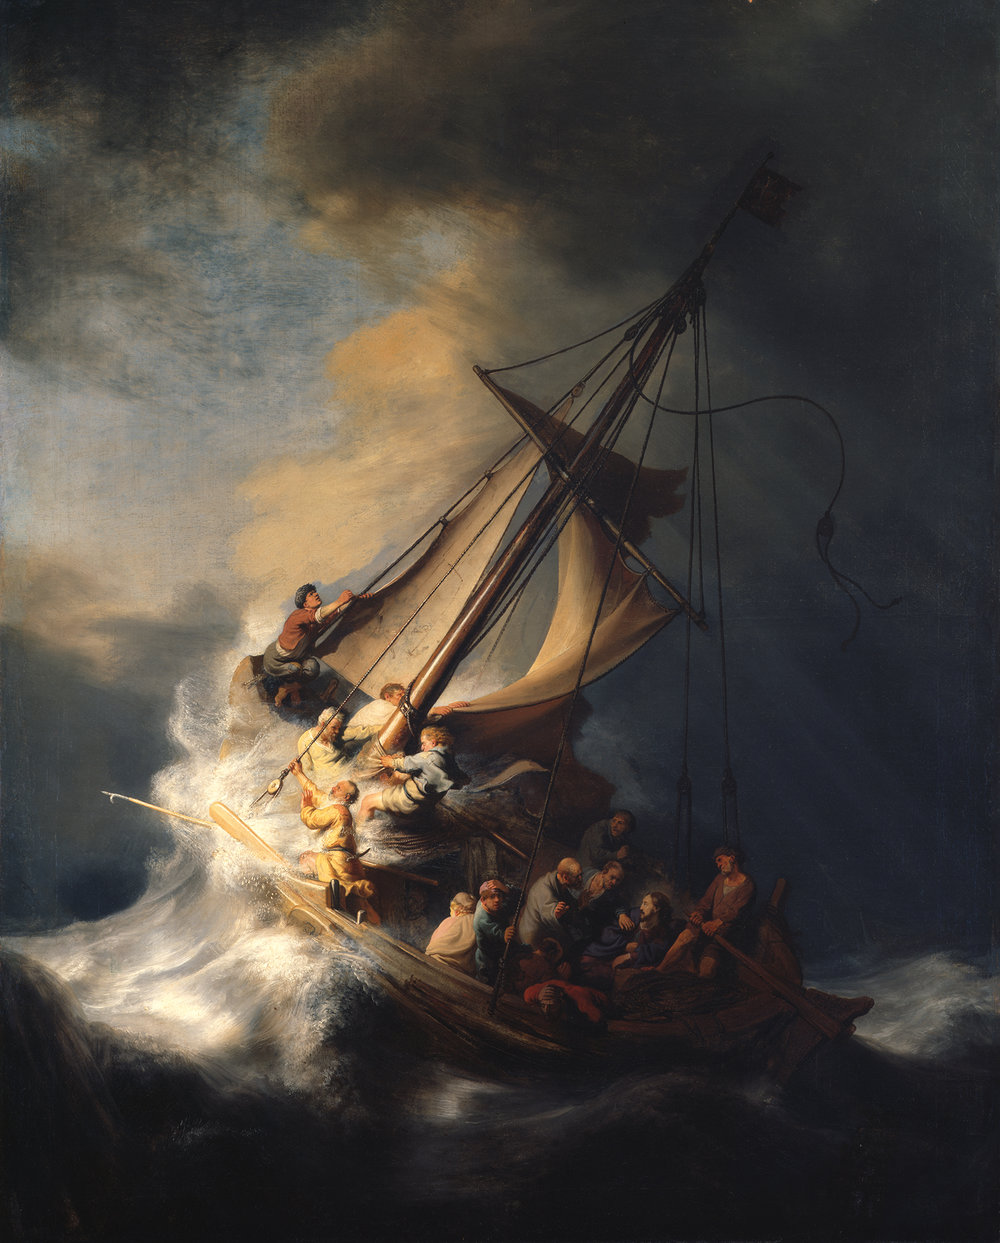 Christ in the Storm on the Sea of Galilee , Rembrandt van Rijn, 1633 ( see Mark 4:35-41 ).  Image of the work  used here for educational purposes courtesy of the  Isabella Stewart Gardner Museum  in Boston  under CC 4.0 . To read the fascinating story of this work's whereabouts, see  the Gardner Museum's page  dedicated to the unsolved mystery of the 1990 heist in which the painting disappeared.